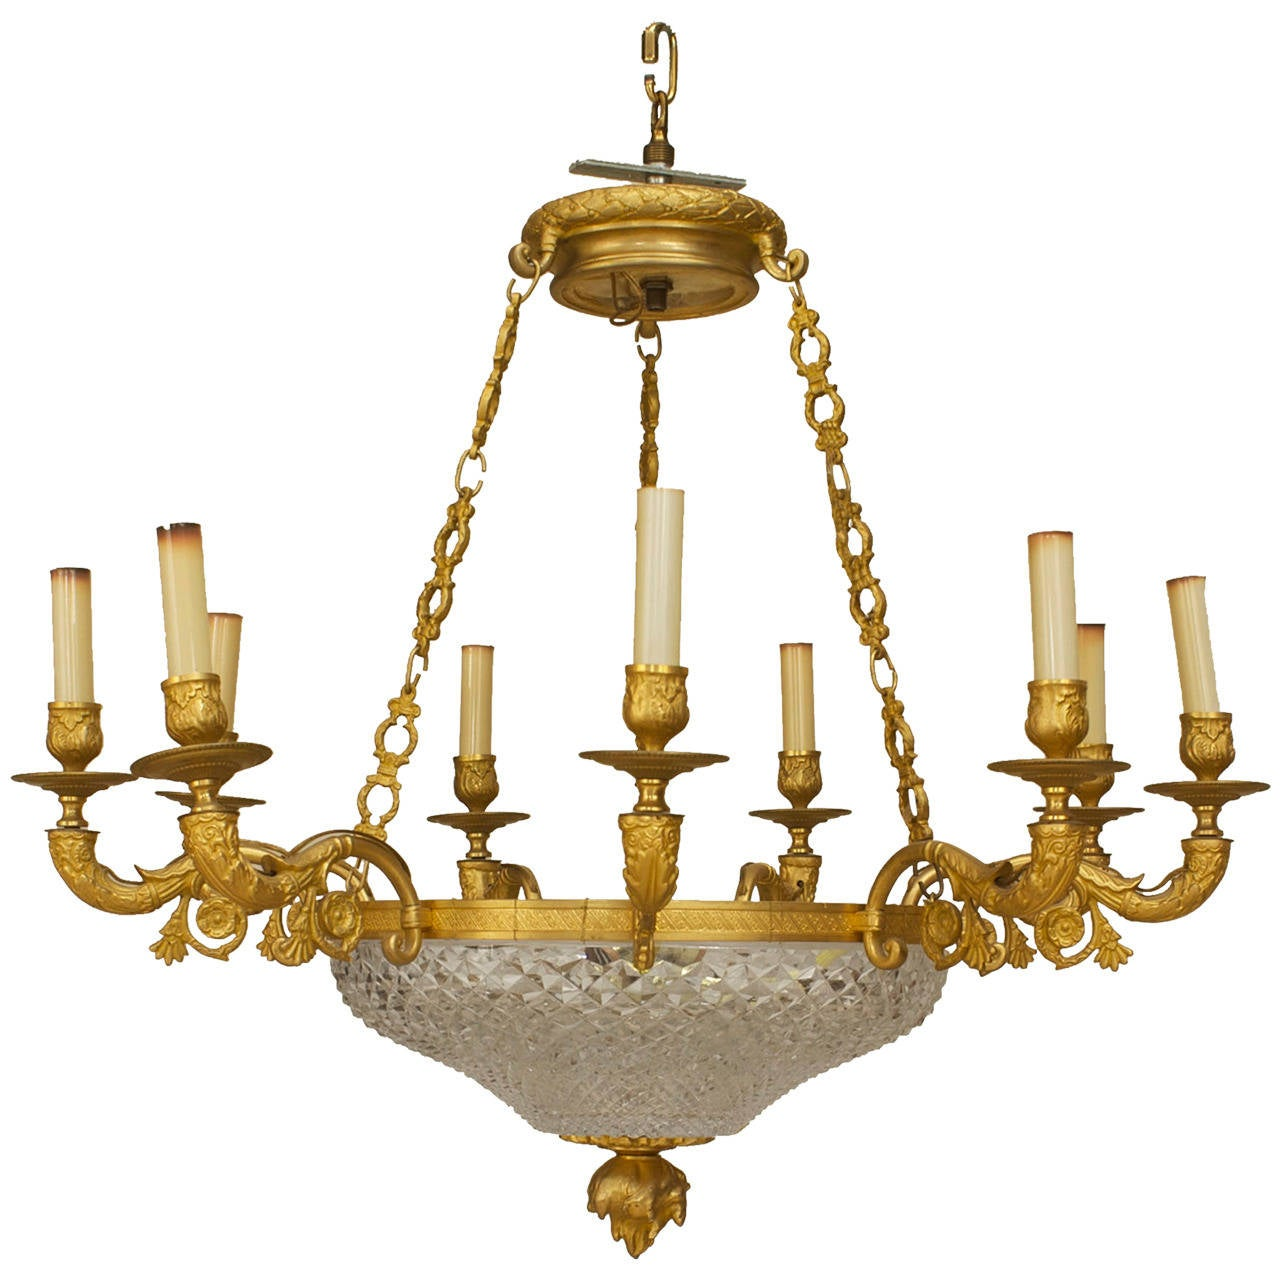 Late 19th c. French Empire Style Gilt Bronze and Crystal Chandelier